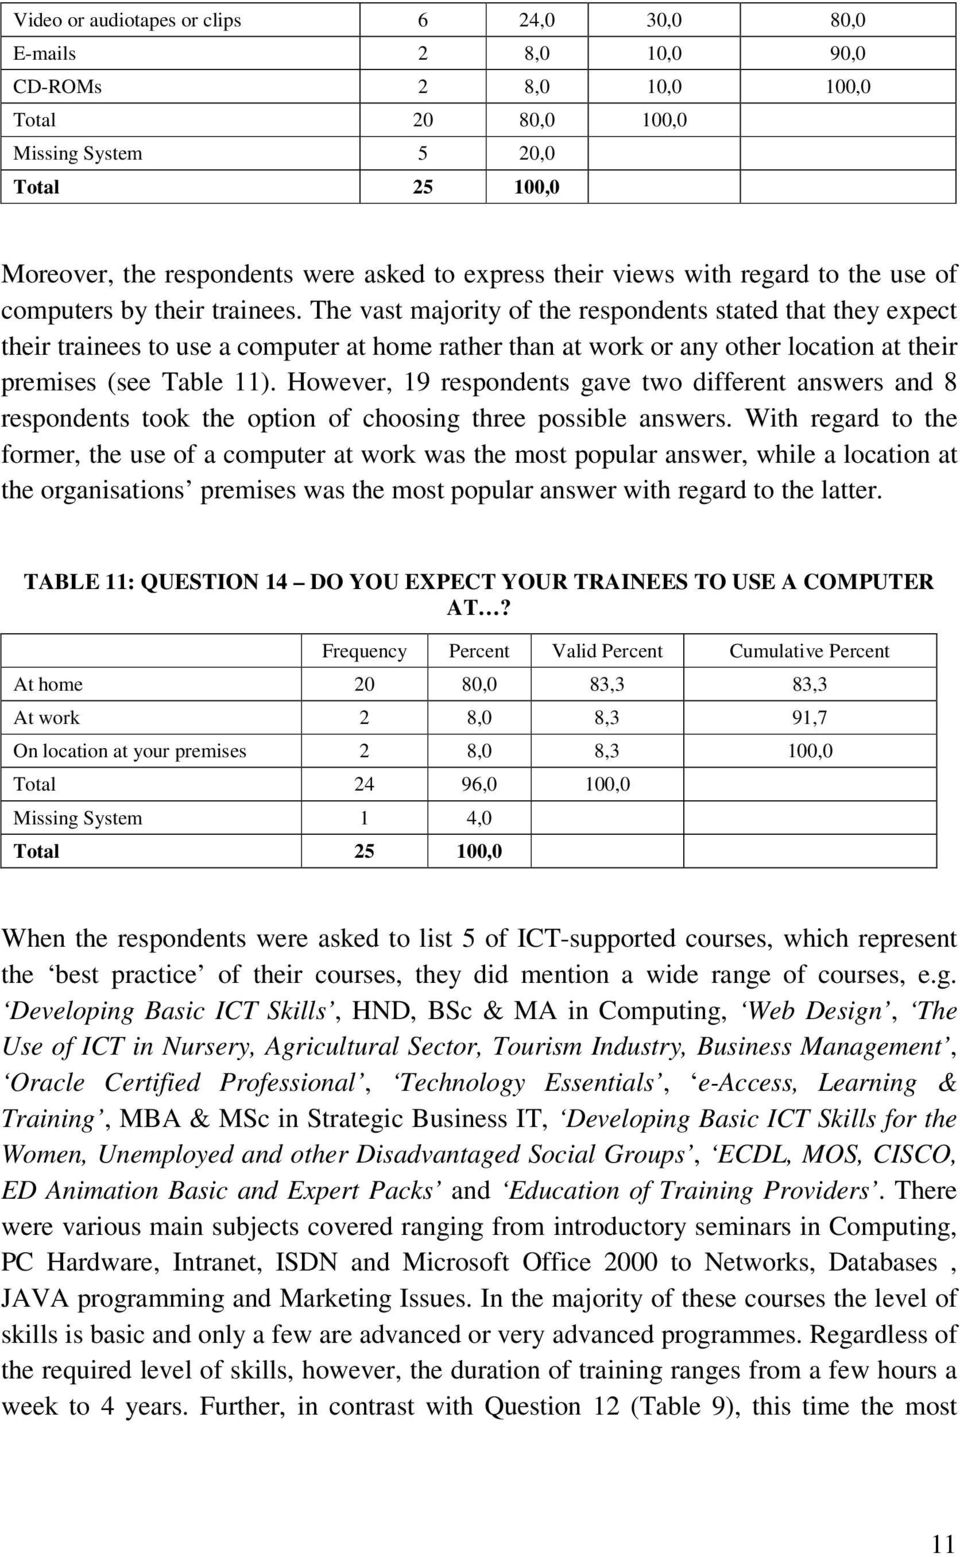 The vast majority of the respondents stated that they expect their trainees to use a computer at home rather than at work or any other location at their premises (see Table 11).